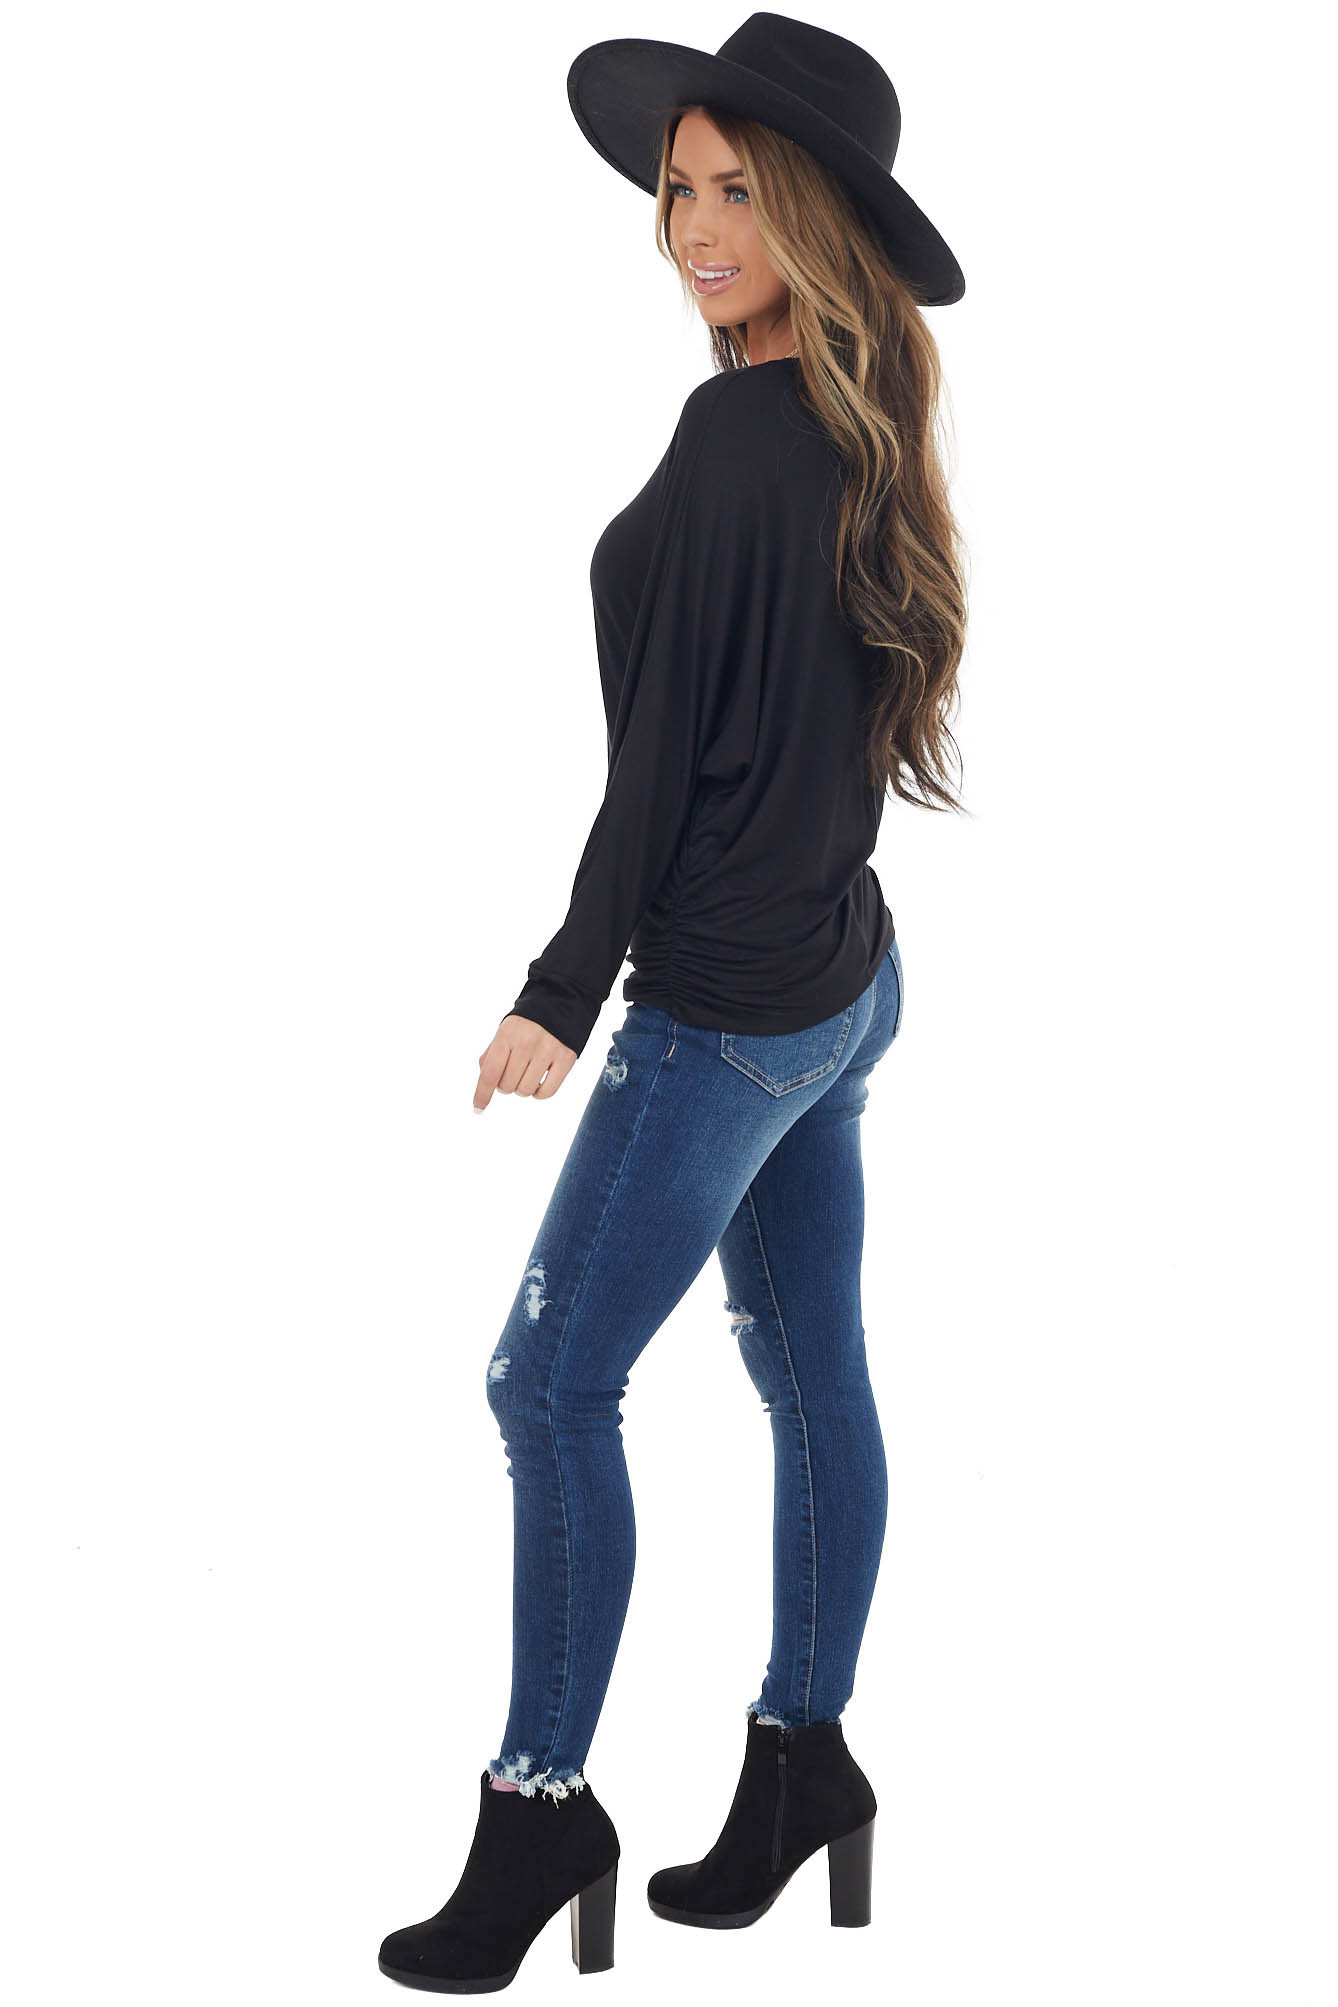 Black Dolman Sleeve Stretchy Knit Top with Banded Cuffs